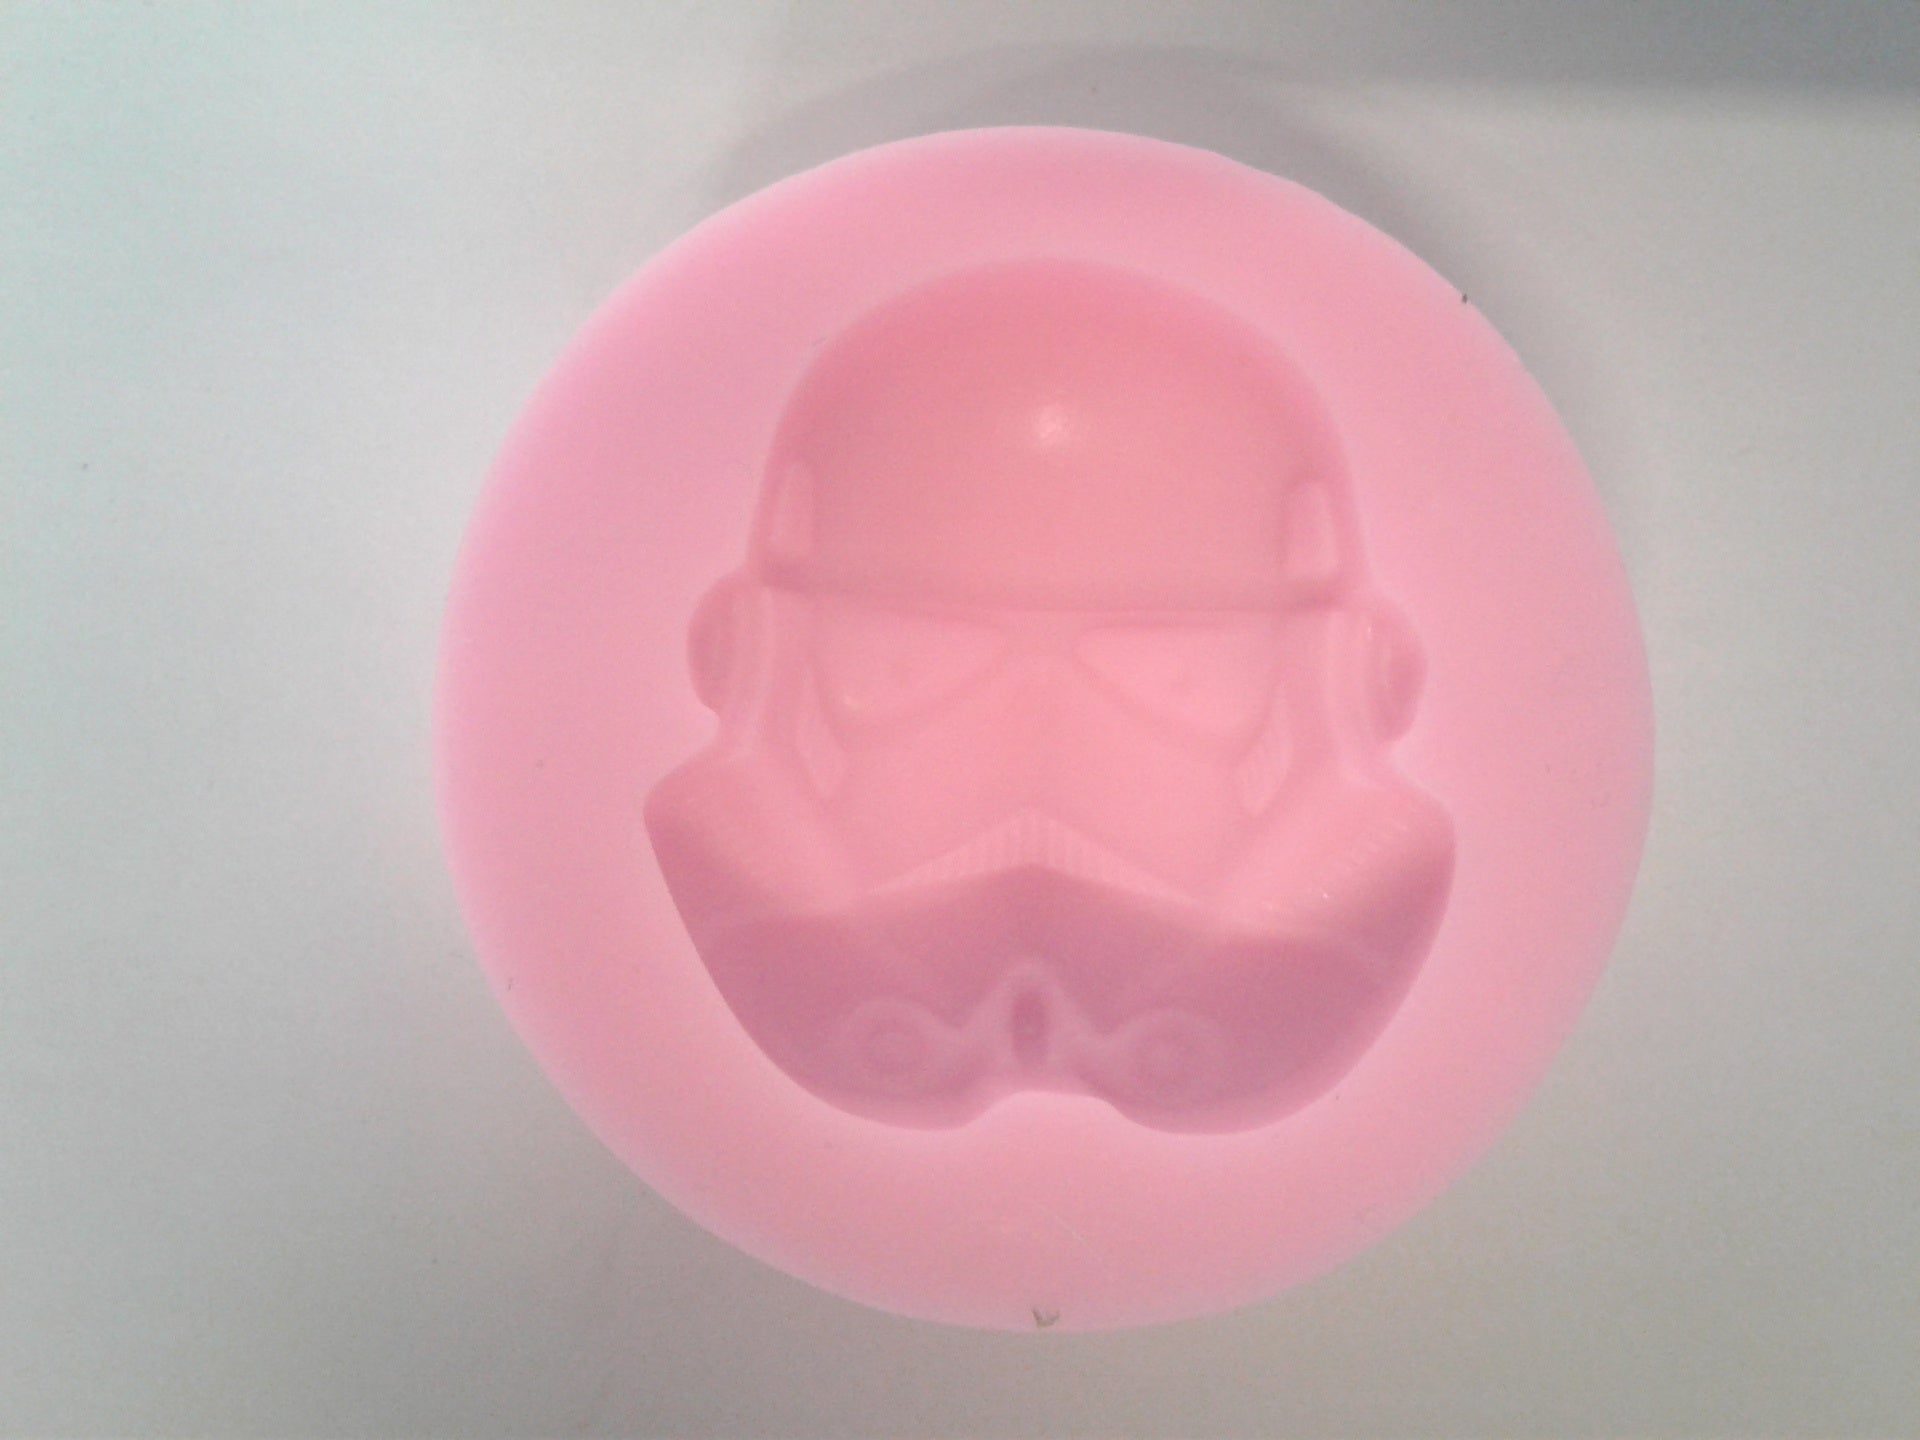 Star Wars Storm Trooper Silicone Mold